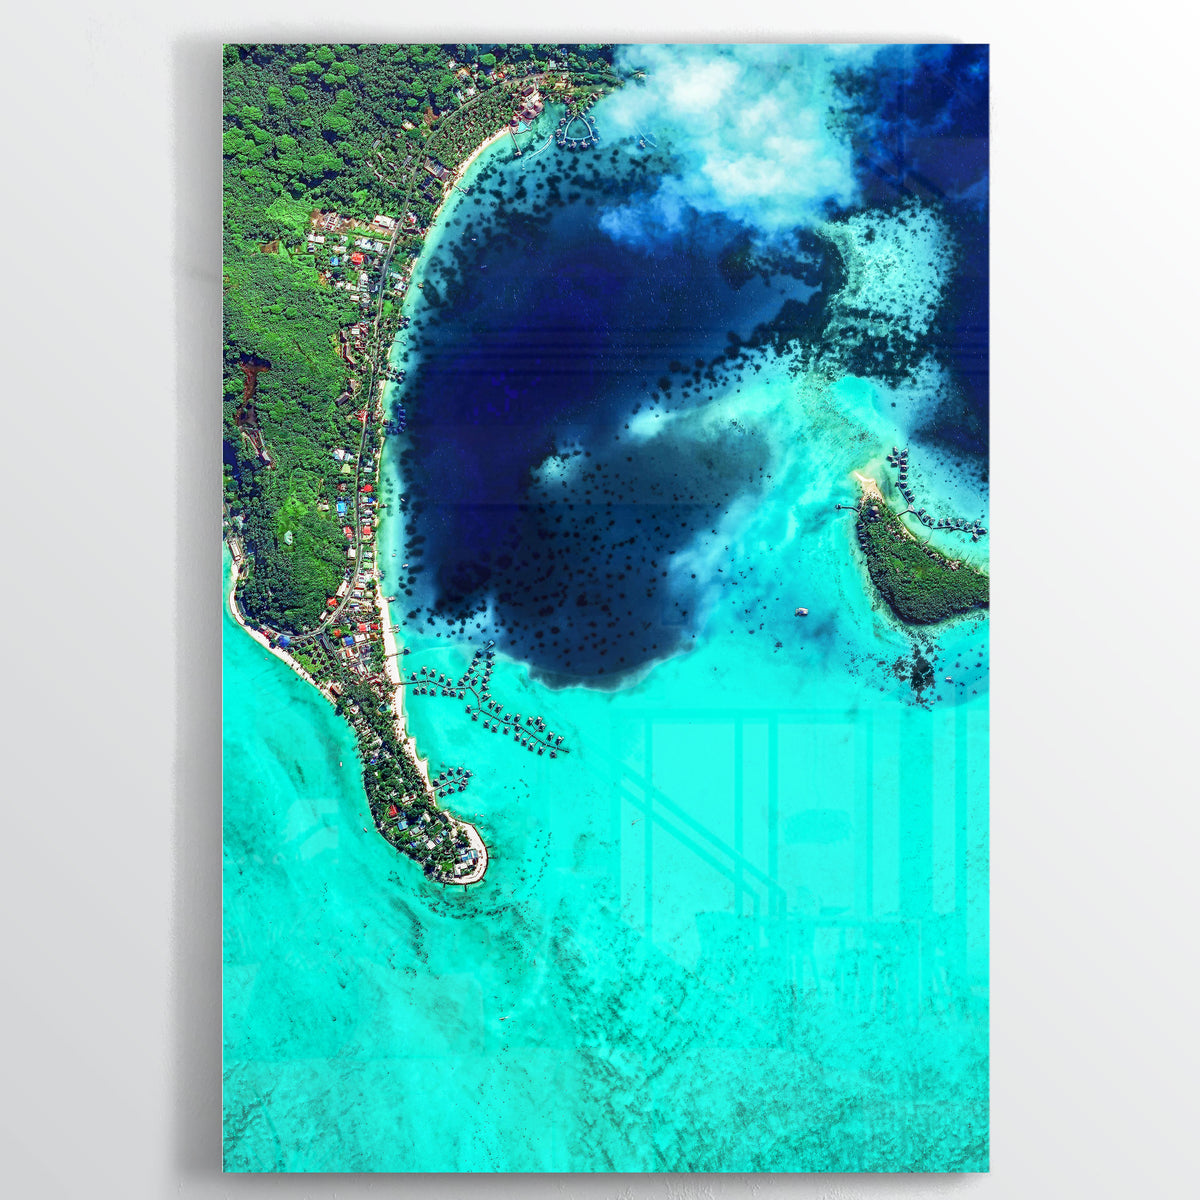 Bora Bora Earth Photography - Floating Acrylic Art - Point Two Design